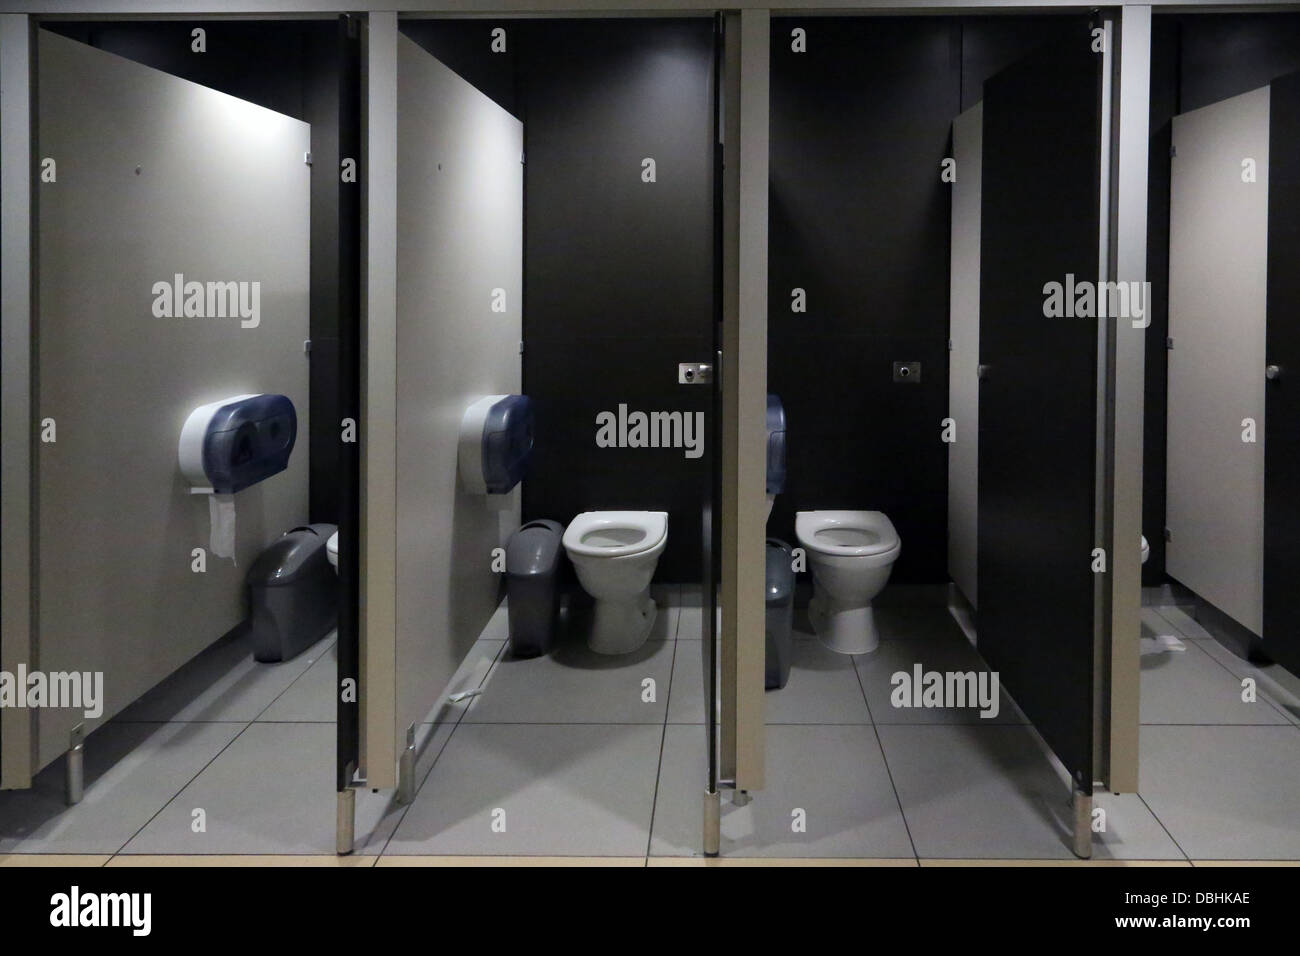 Public Toilets With Automatic Flush At Motorway Service Station England - Stock Image